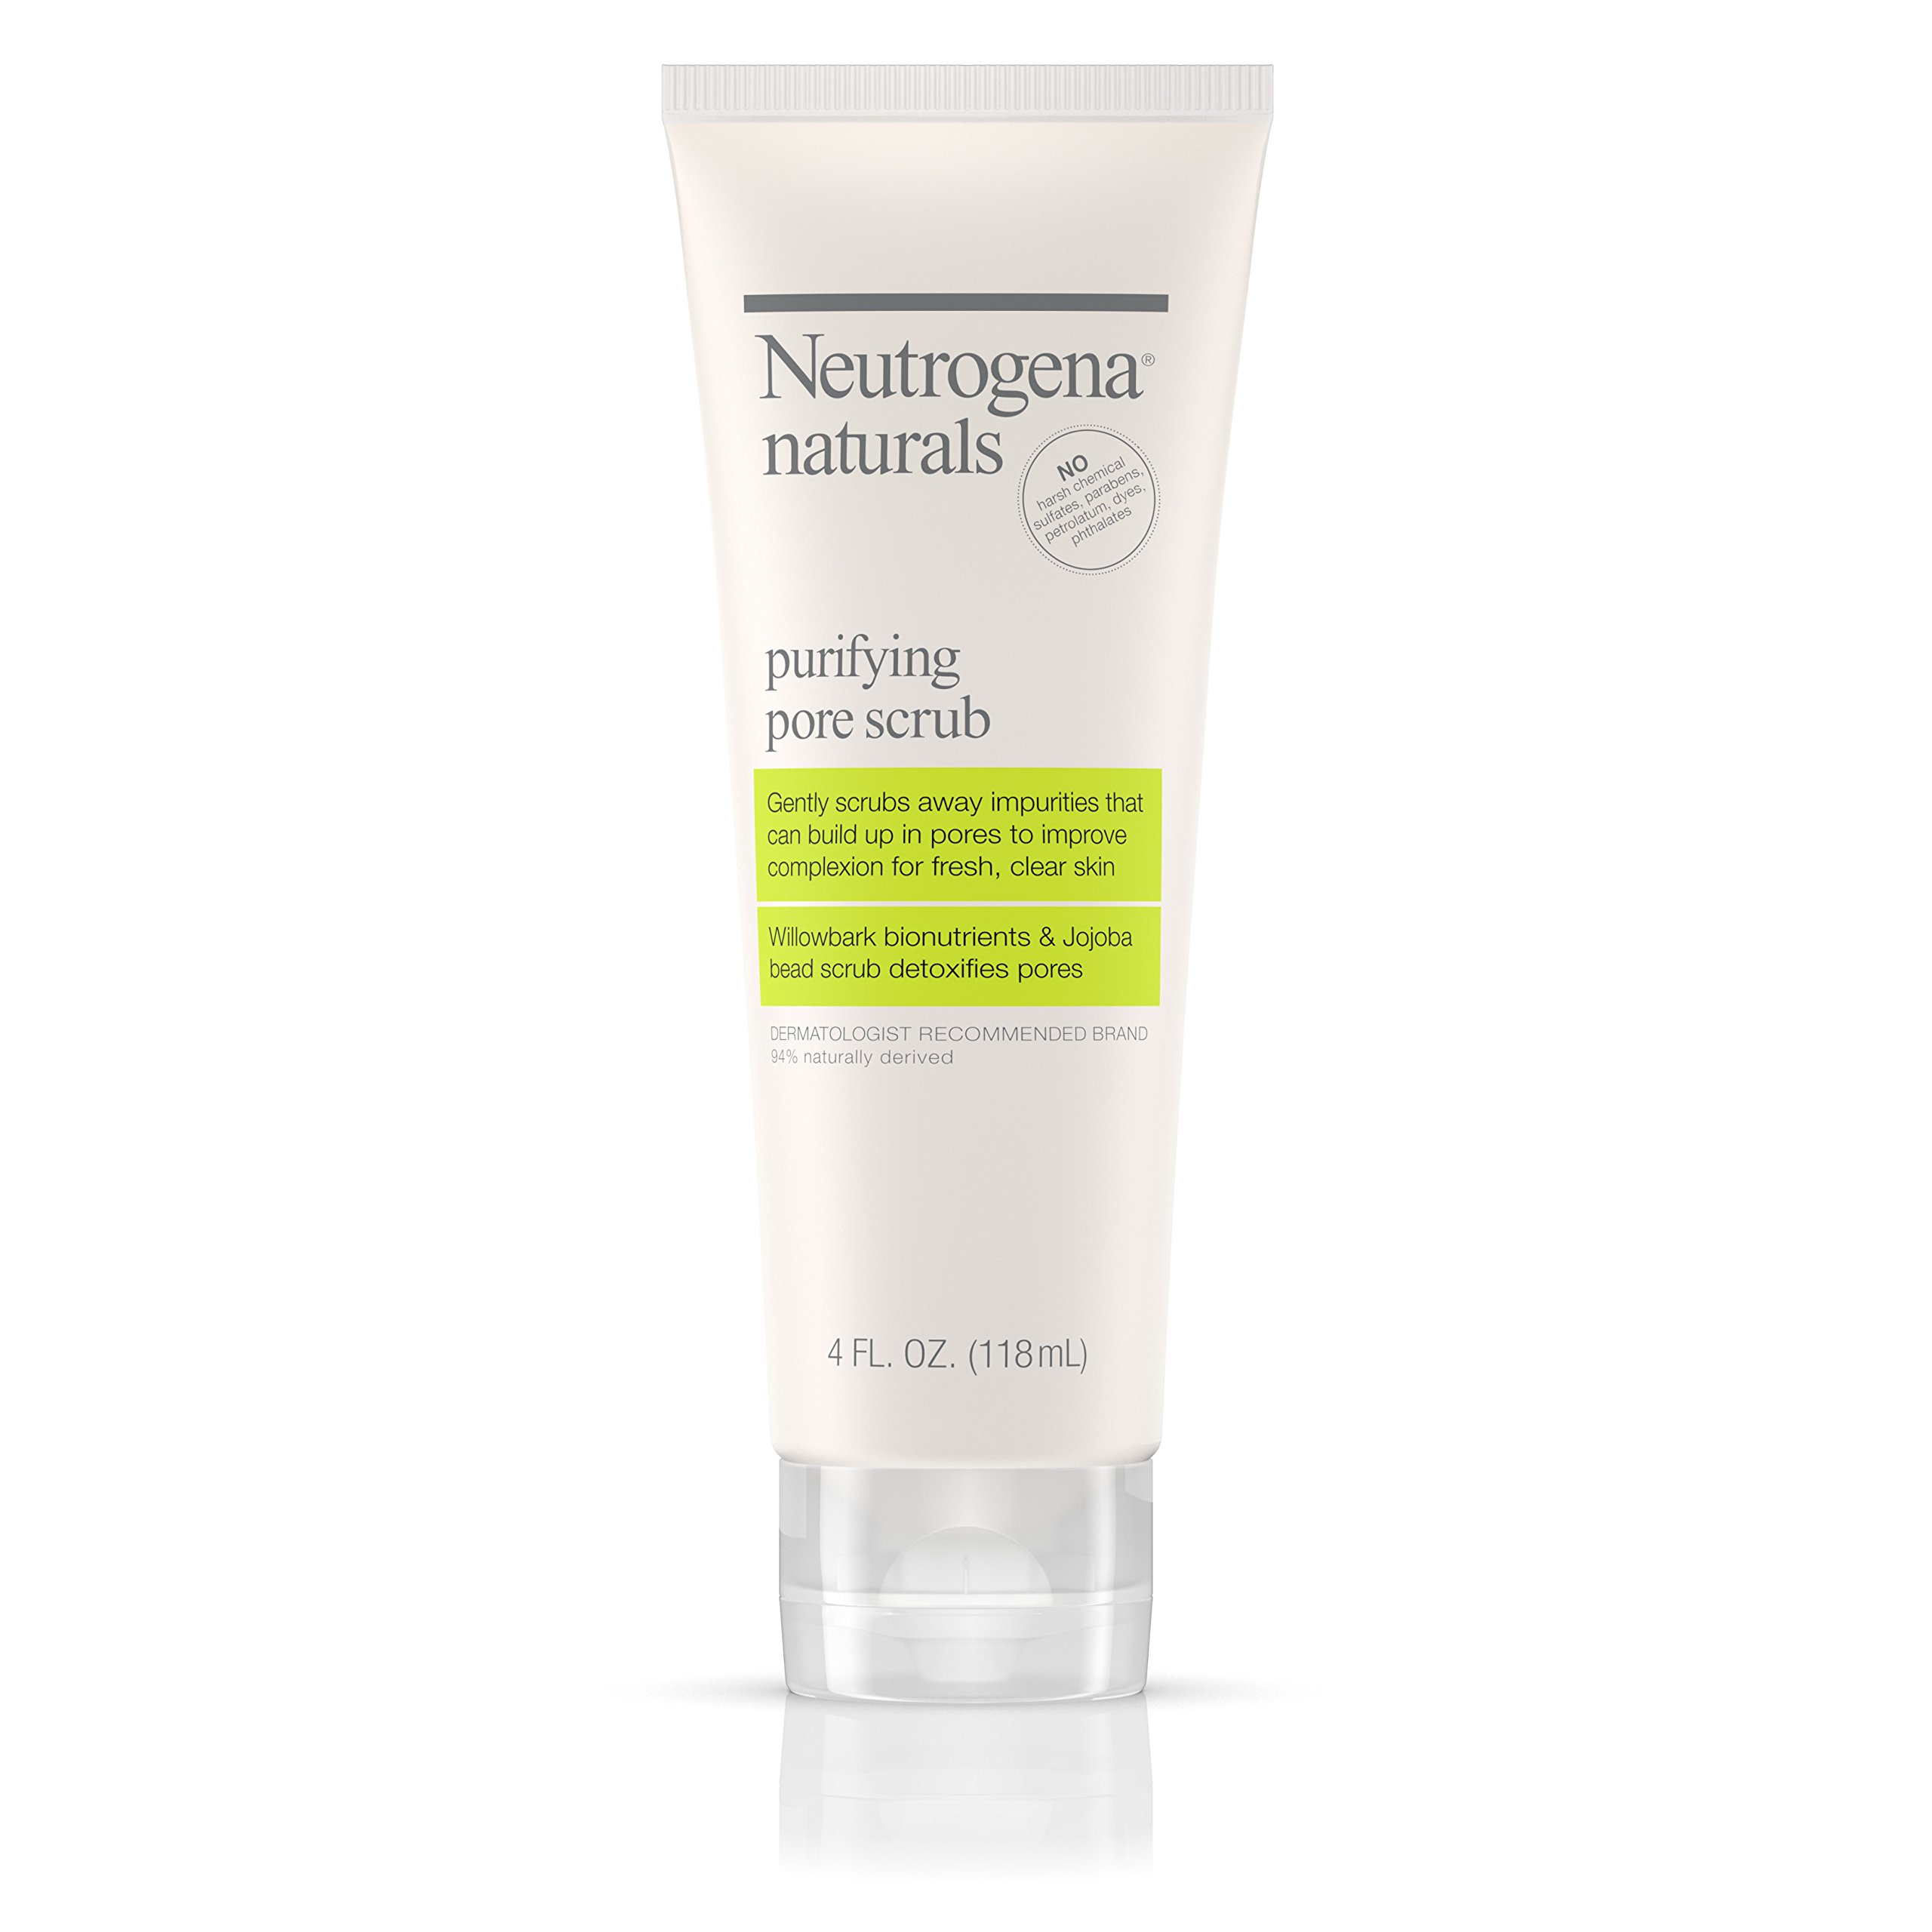 Neutrogena Naturals Purifying Pore Scrub, 4 Fluid Ounce (Pack of 3)